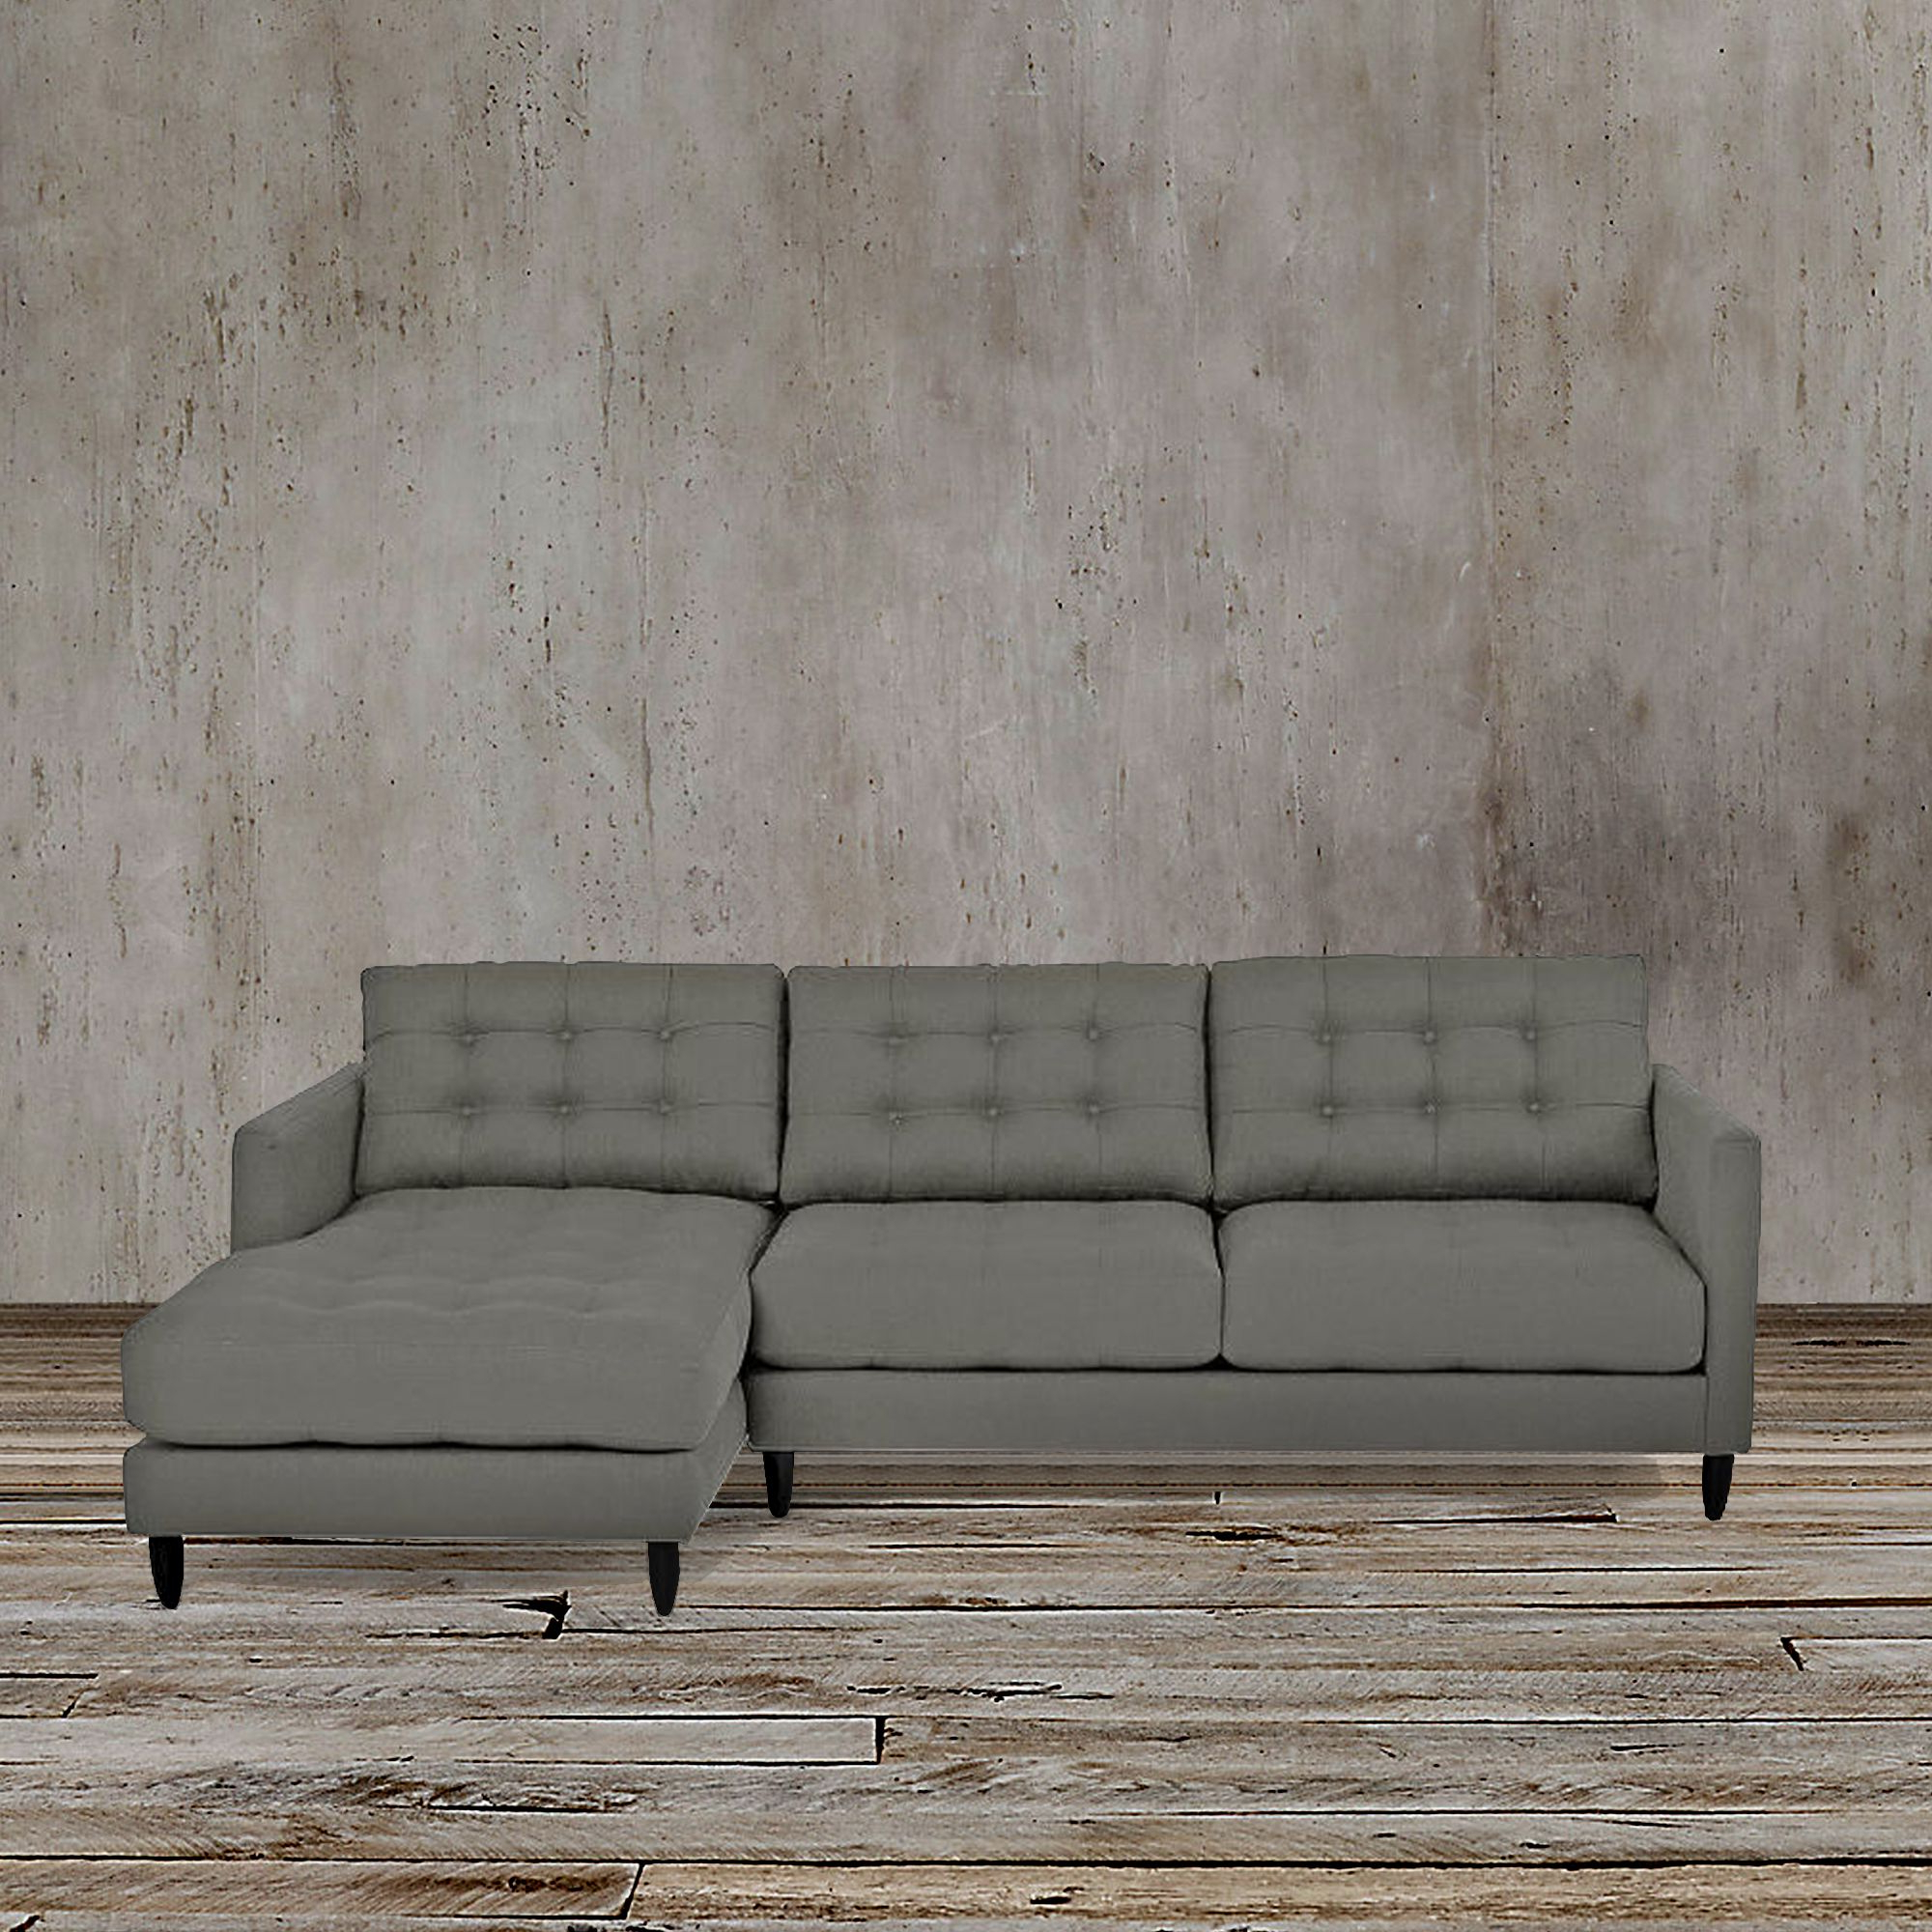 Widely Used Florence Mid Century Modern Left Sectional Sofas Within This Sleek And Functional Gray Left Arm Facing Sectional (View 4 of 20)